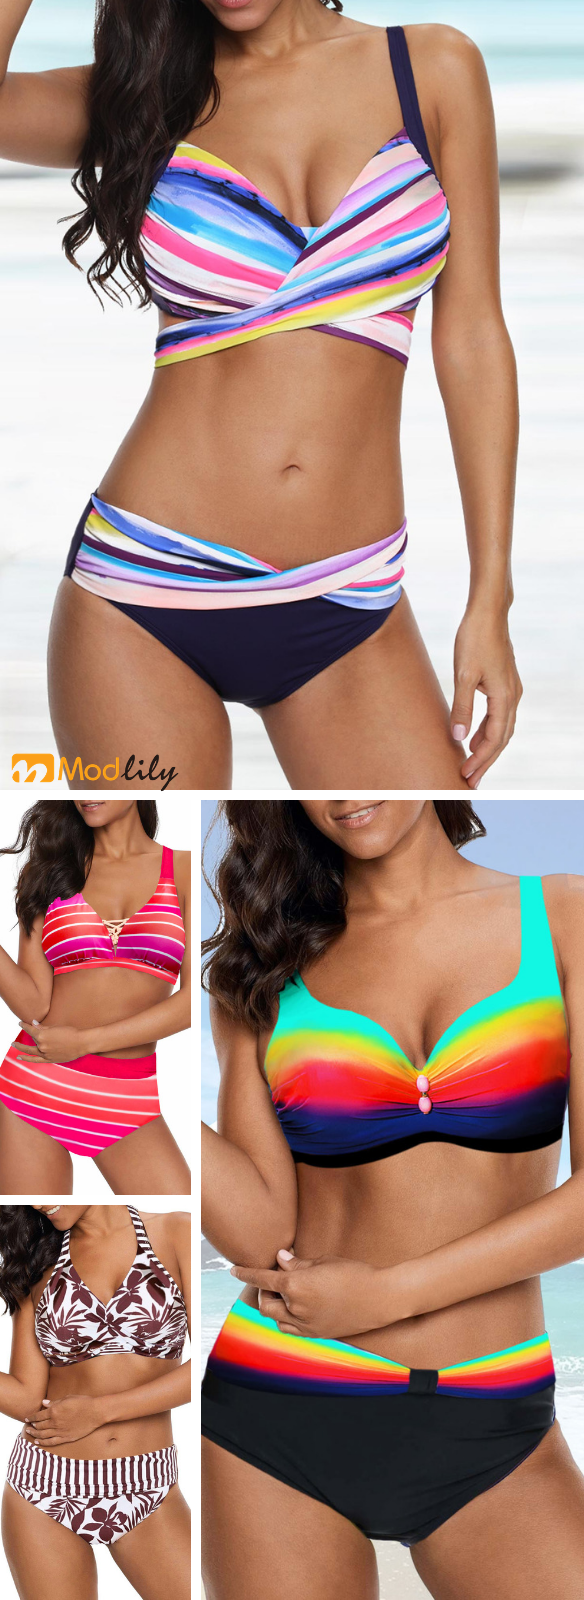 beach, sunshine, swimming pool, swimming, travel, sport, enjoy, relax, travel outfit. #summercruiseoutfits